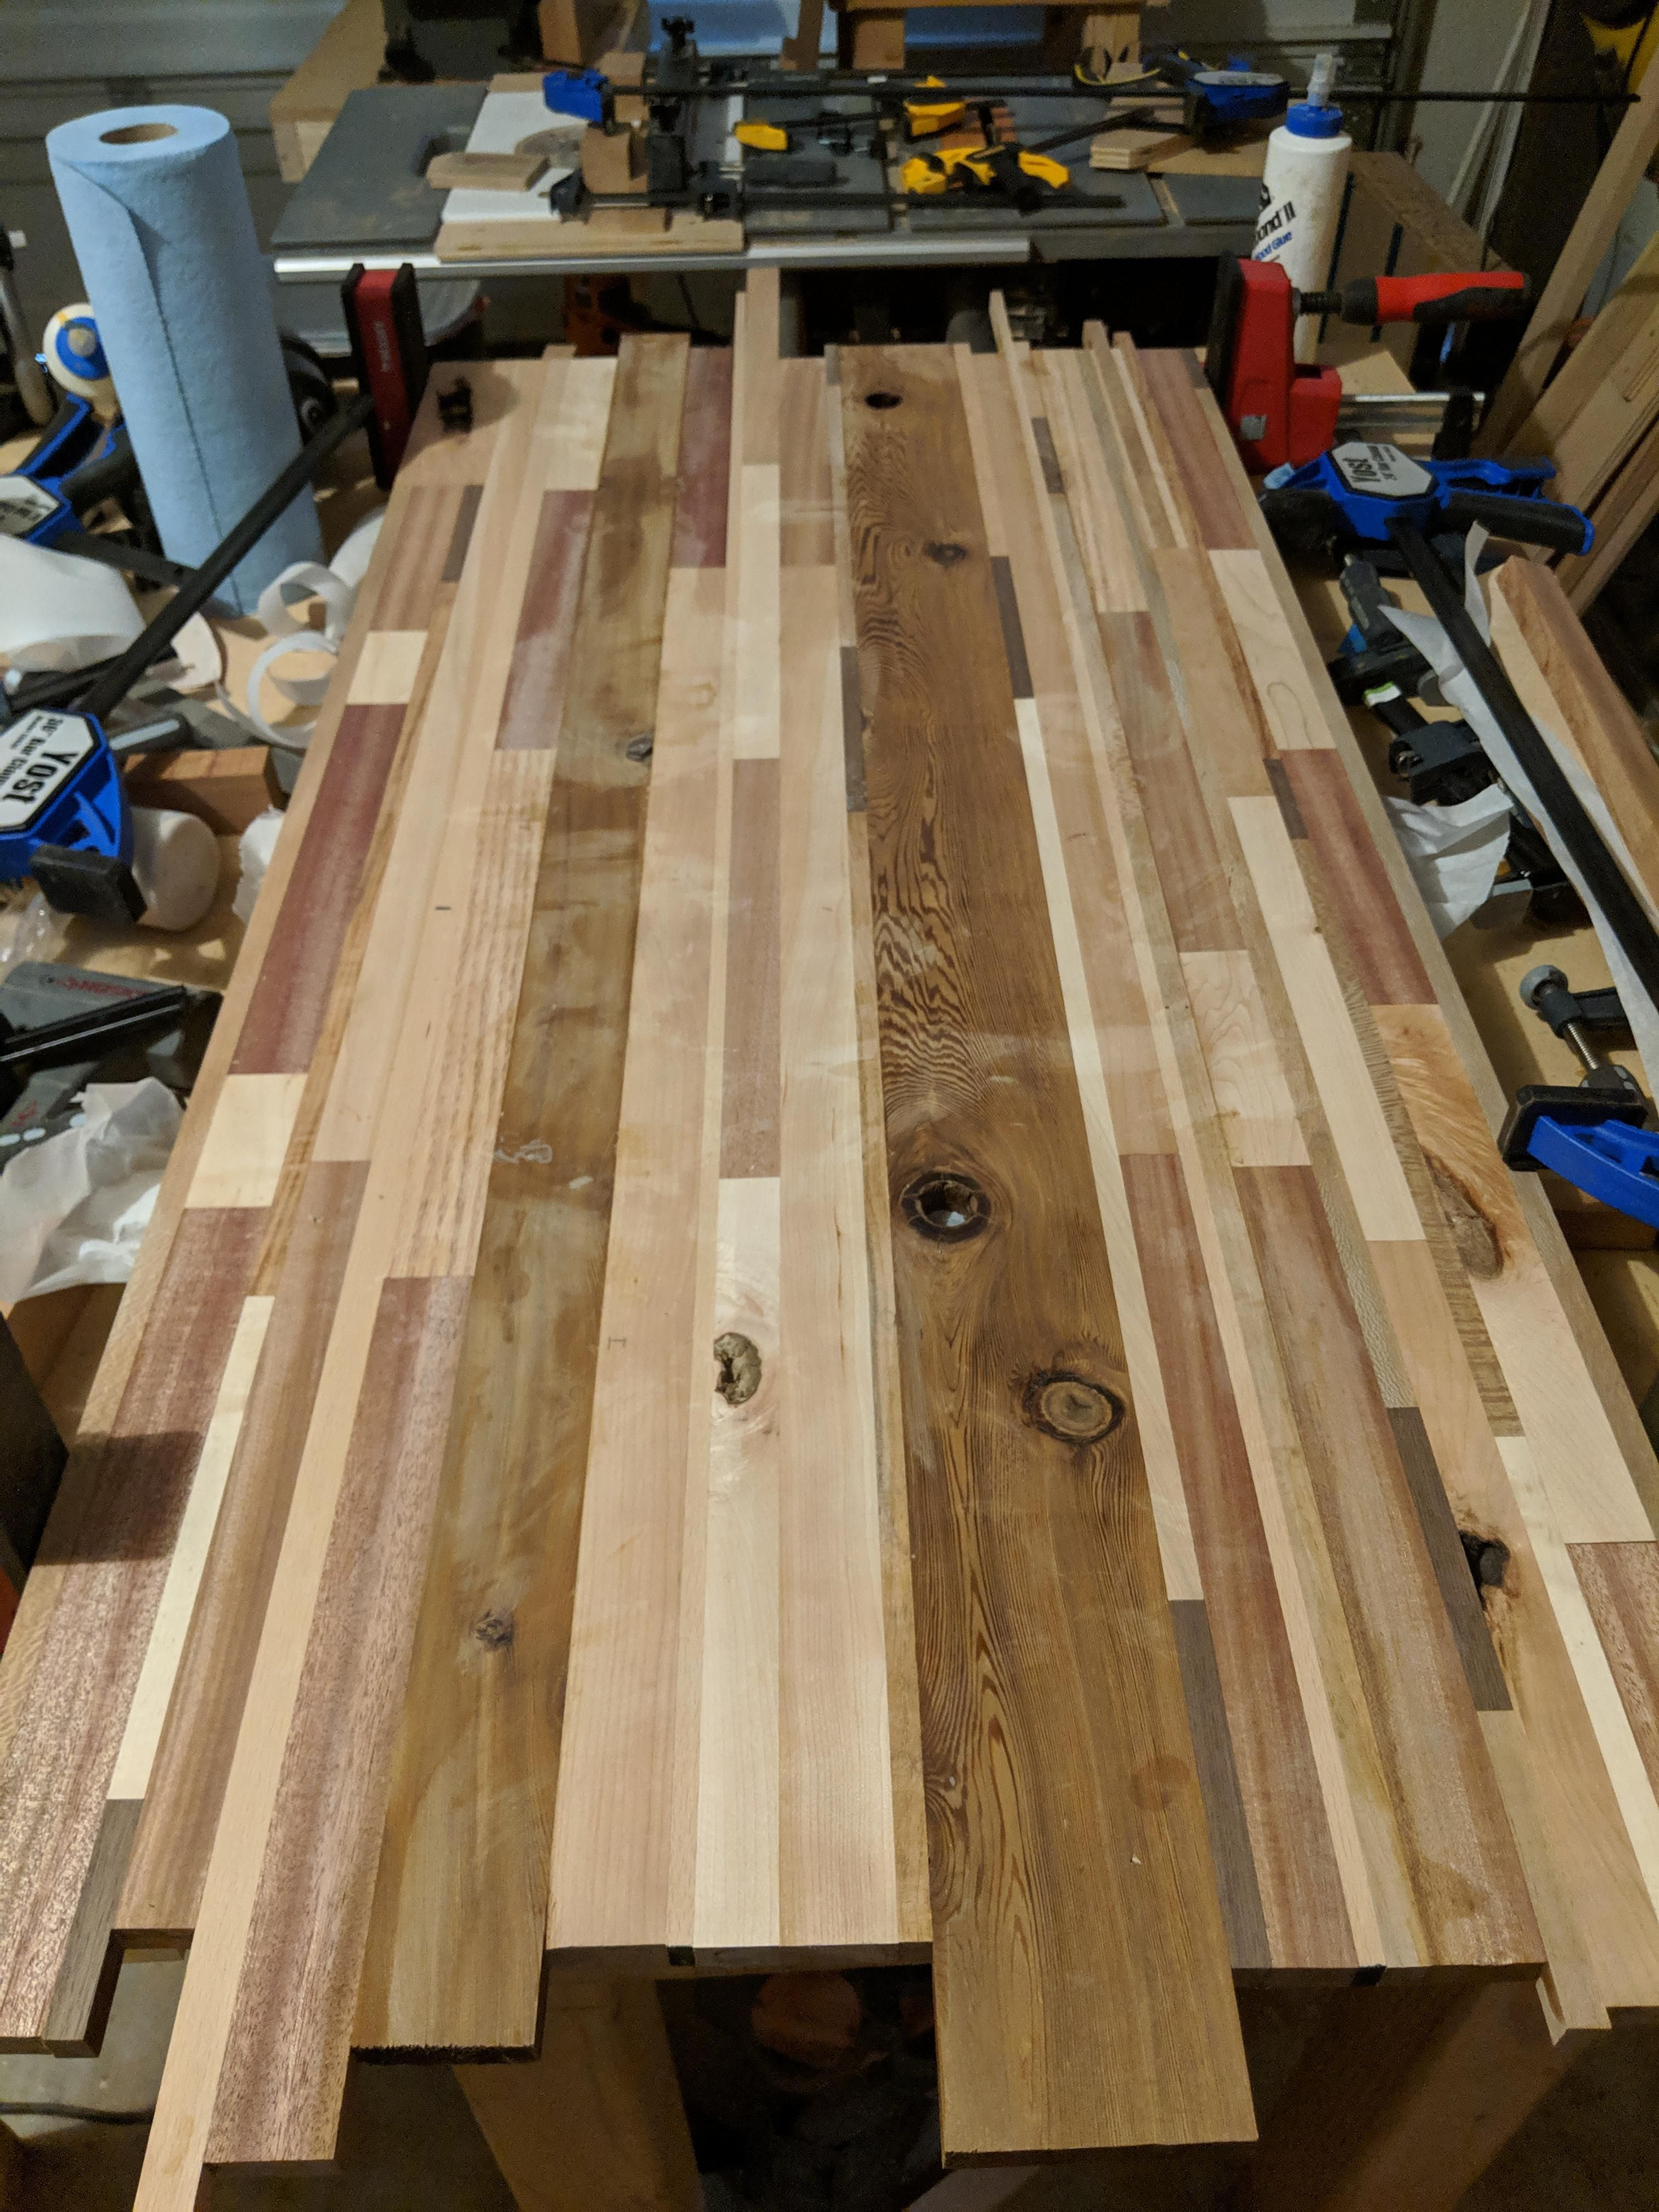 Laminated Butcher Block Table Top Need Advice Https Ift Tt 2zlqdrn